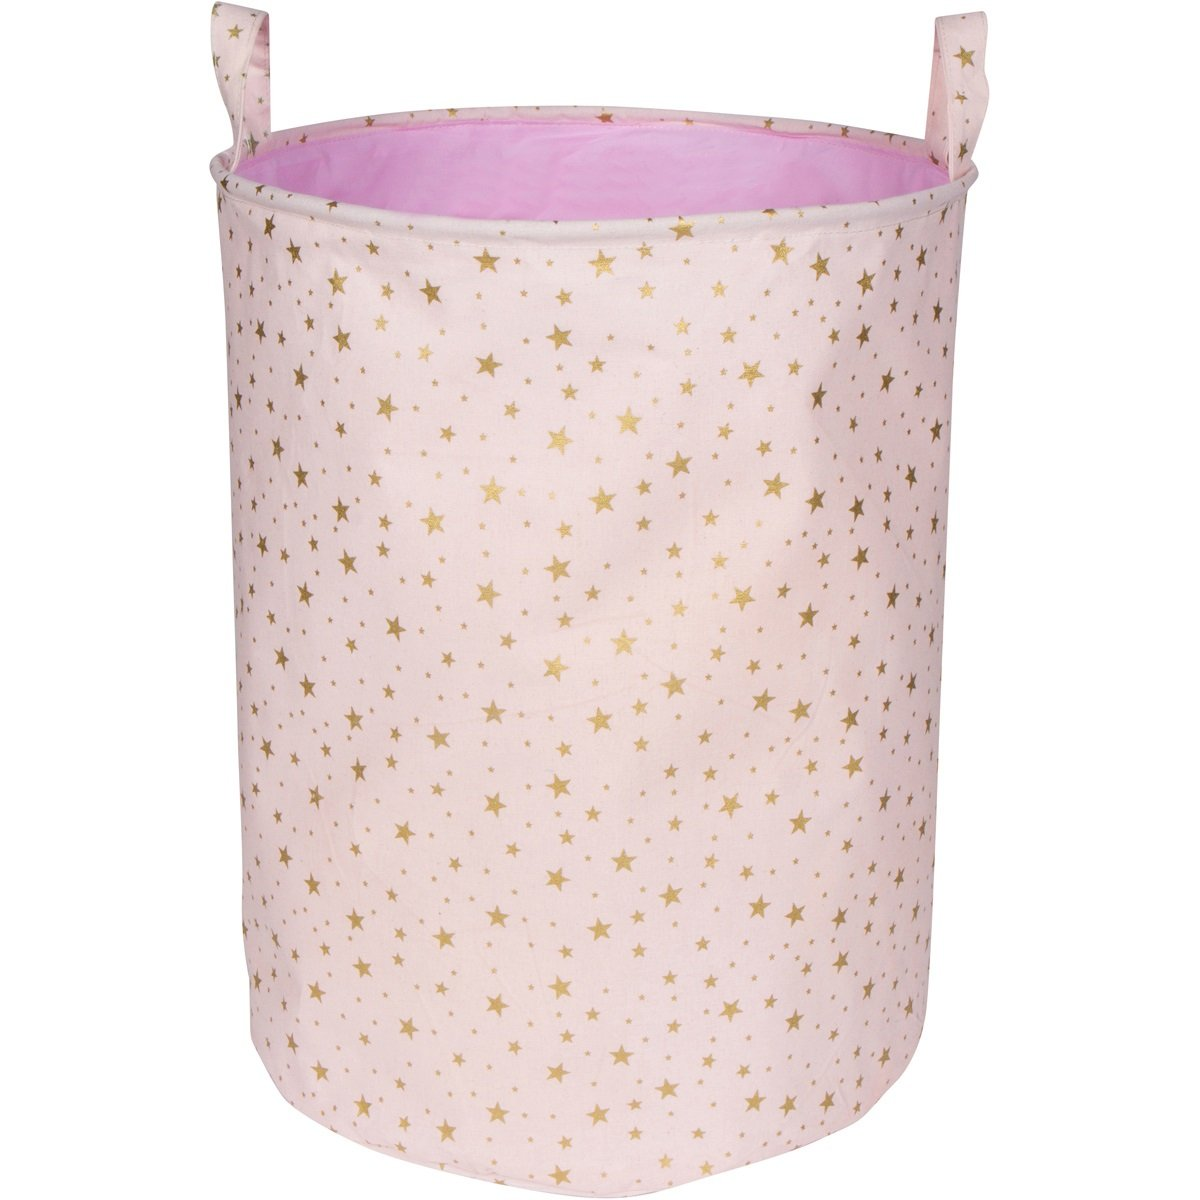 LuxCoco Blush Pink Storage Basket / Laundry Hamper with Shimmery Gold Star Pattern   19.6'' Large Waterproof Collapsible Cotton Canvas Bin with Handles   Baby Kids Nursery Toy Clothes Book Organizer